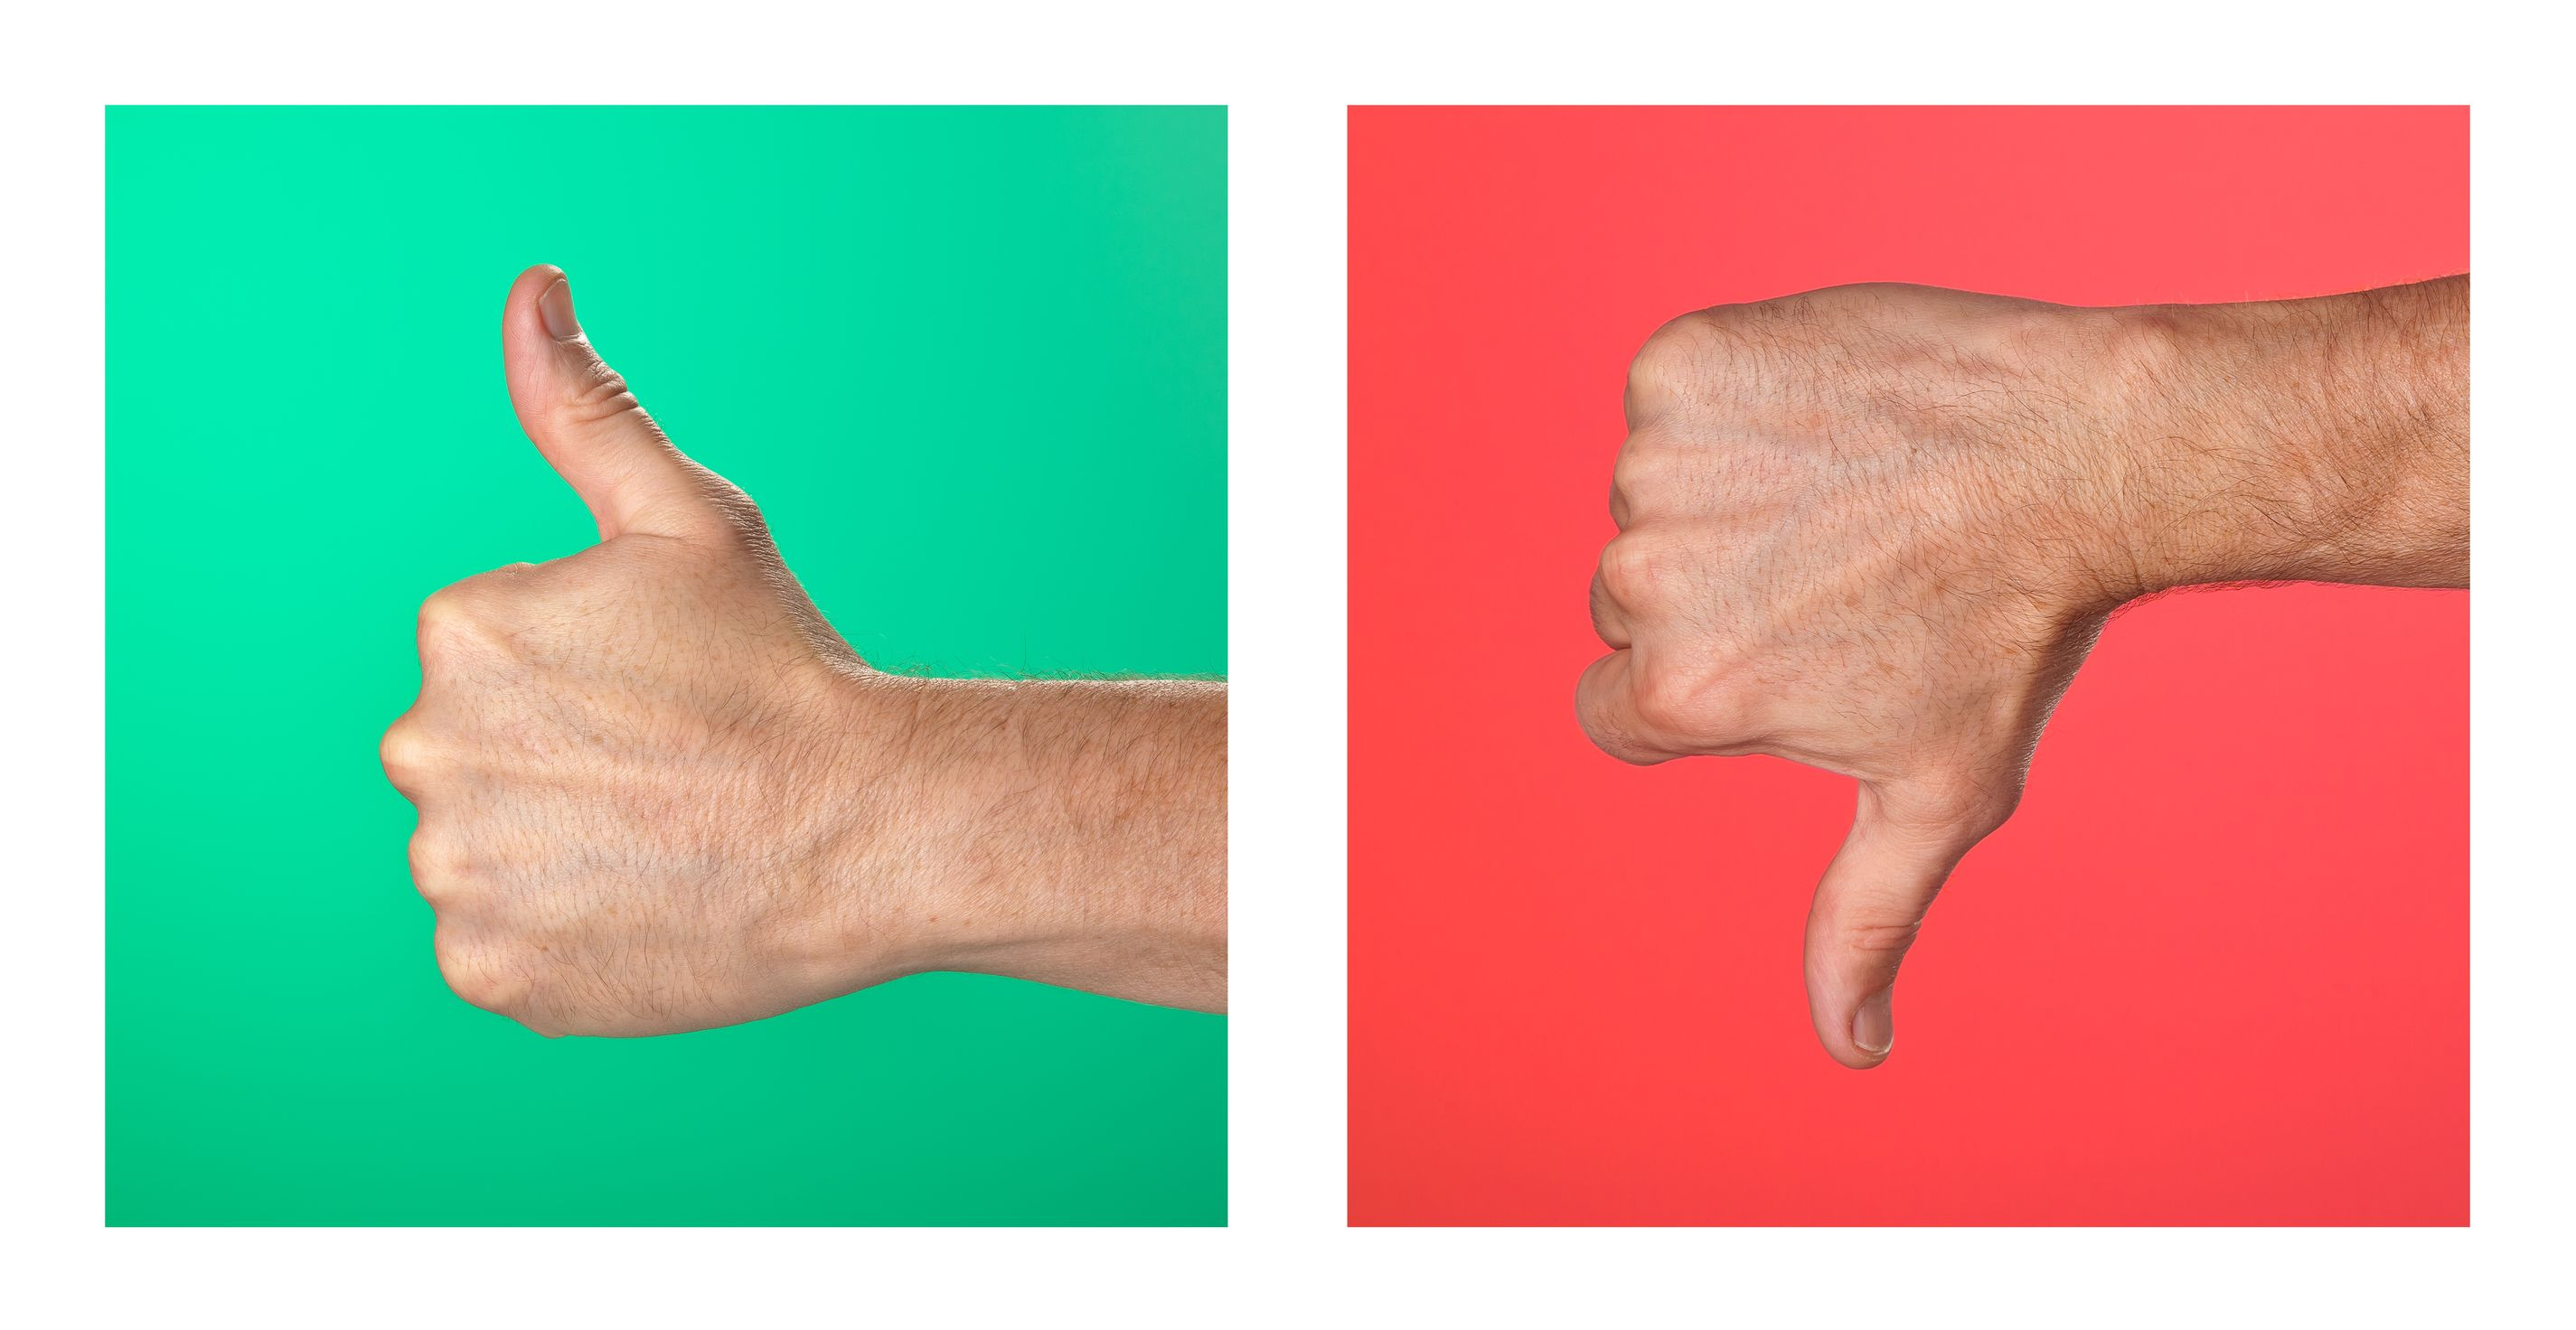 10537371 - pair of thumbs up and thumbs down signs on green and red background